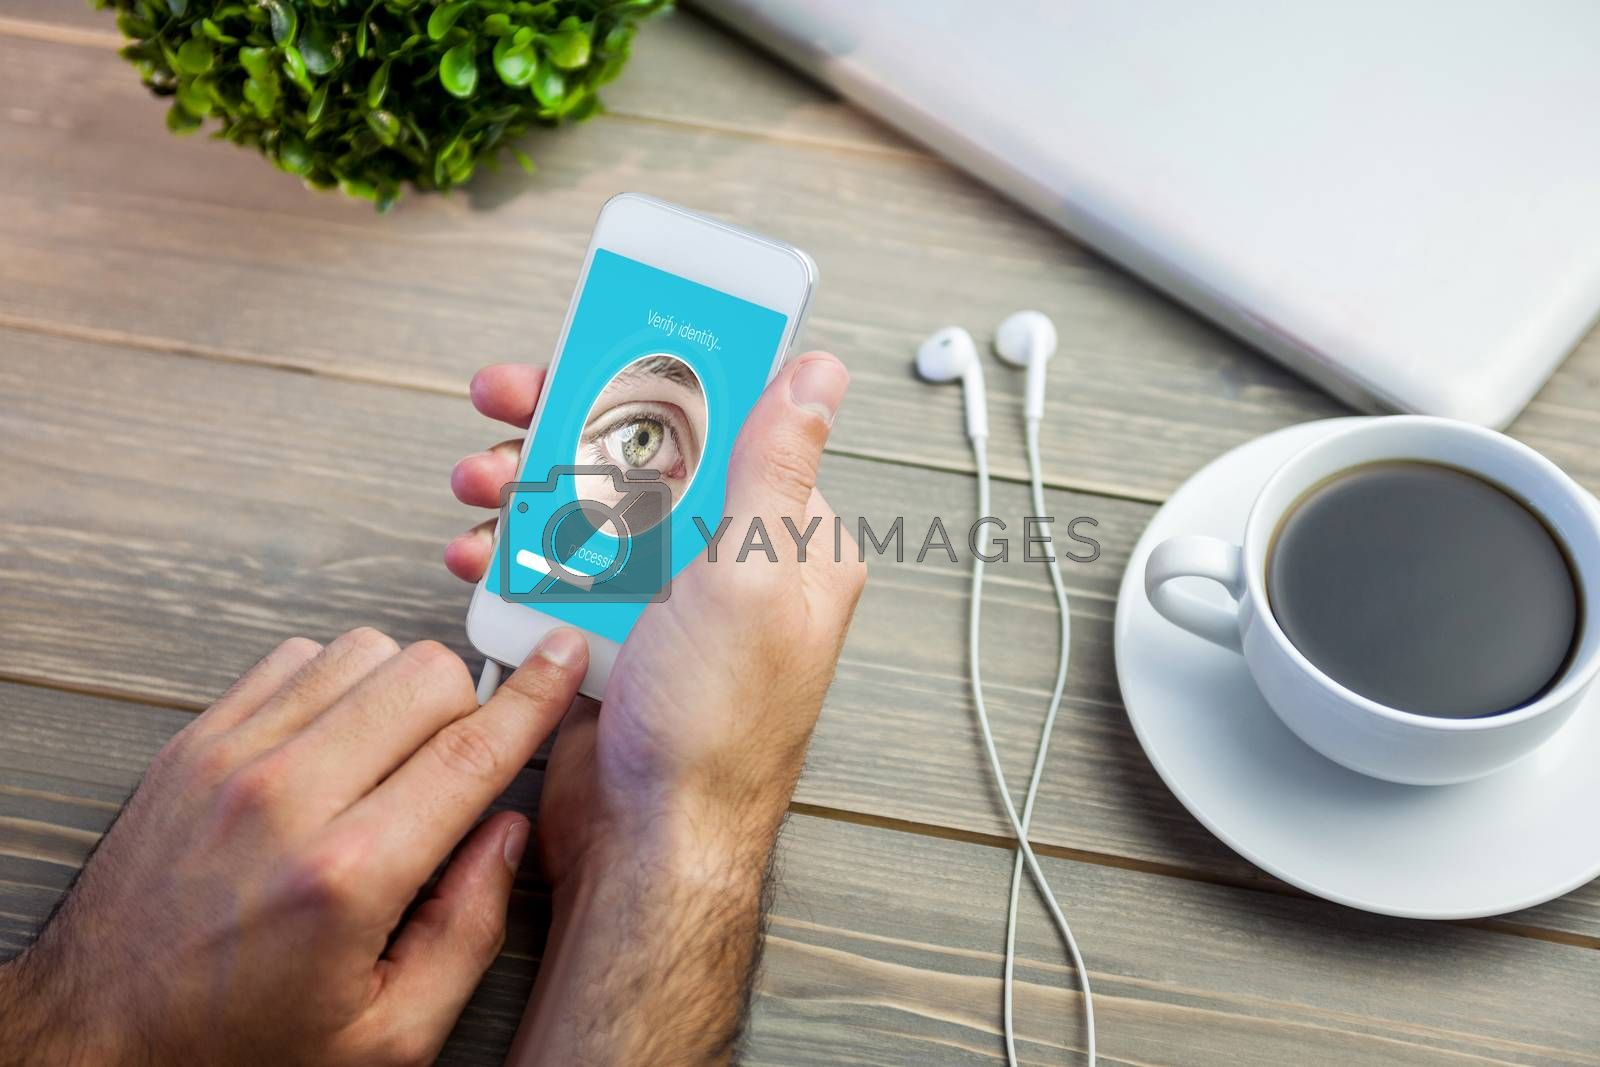 Royalty free image of Composite image of iris recognition by Wavebreakmedia